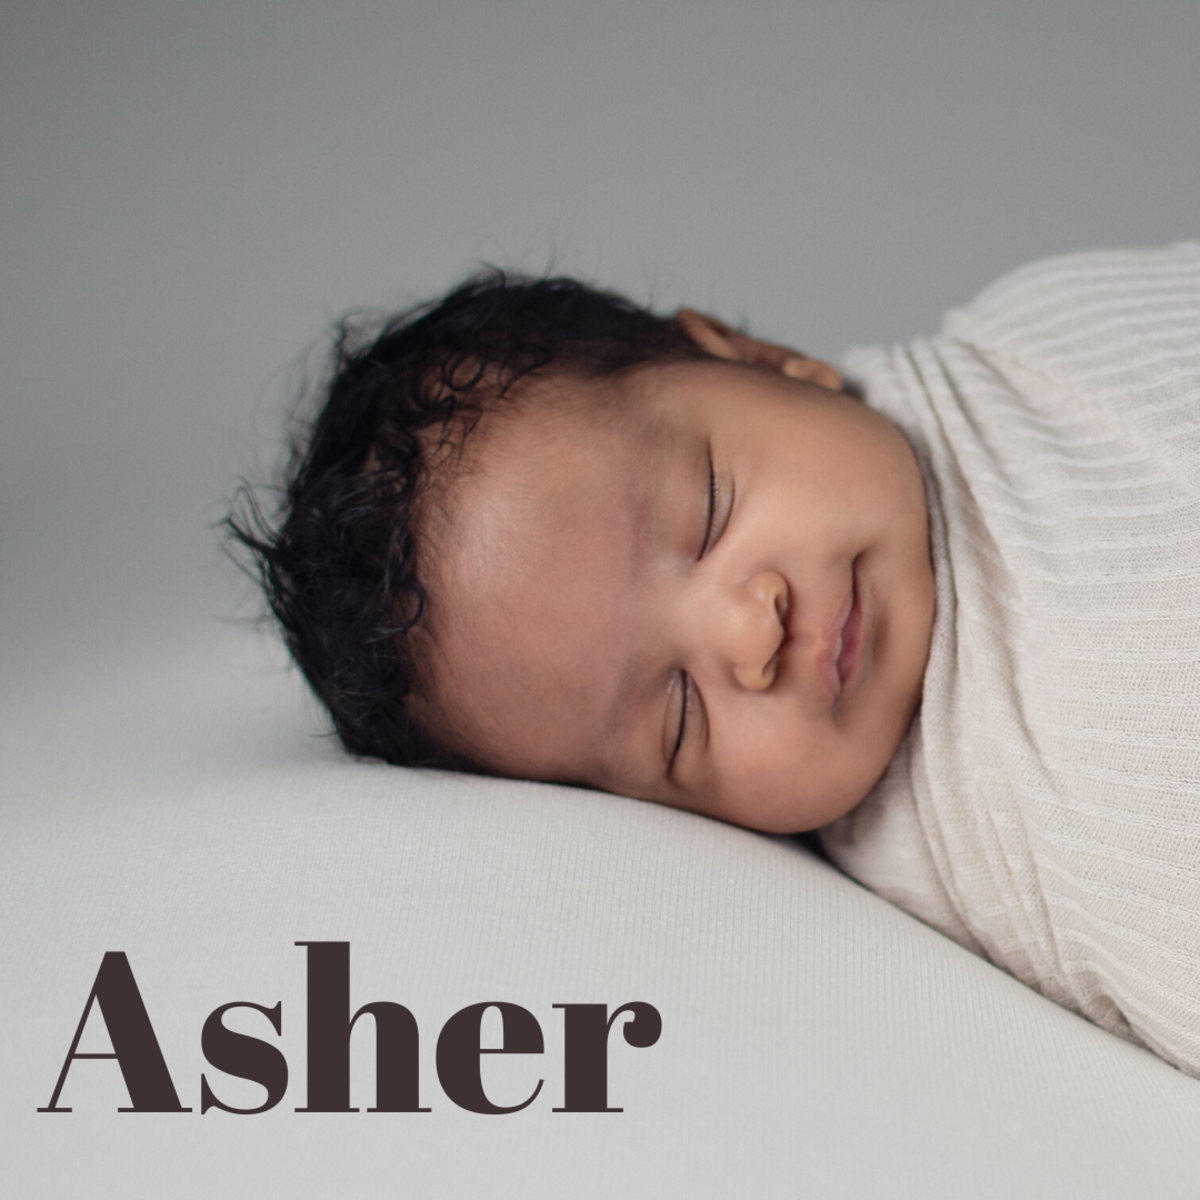 Baby Asher